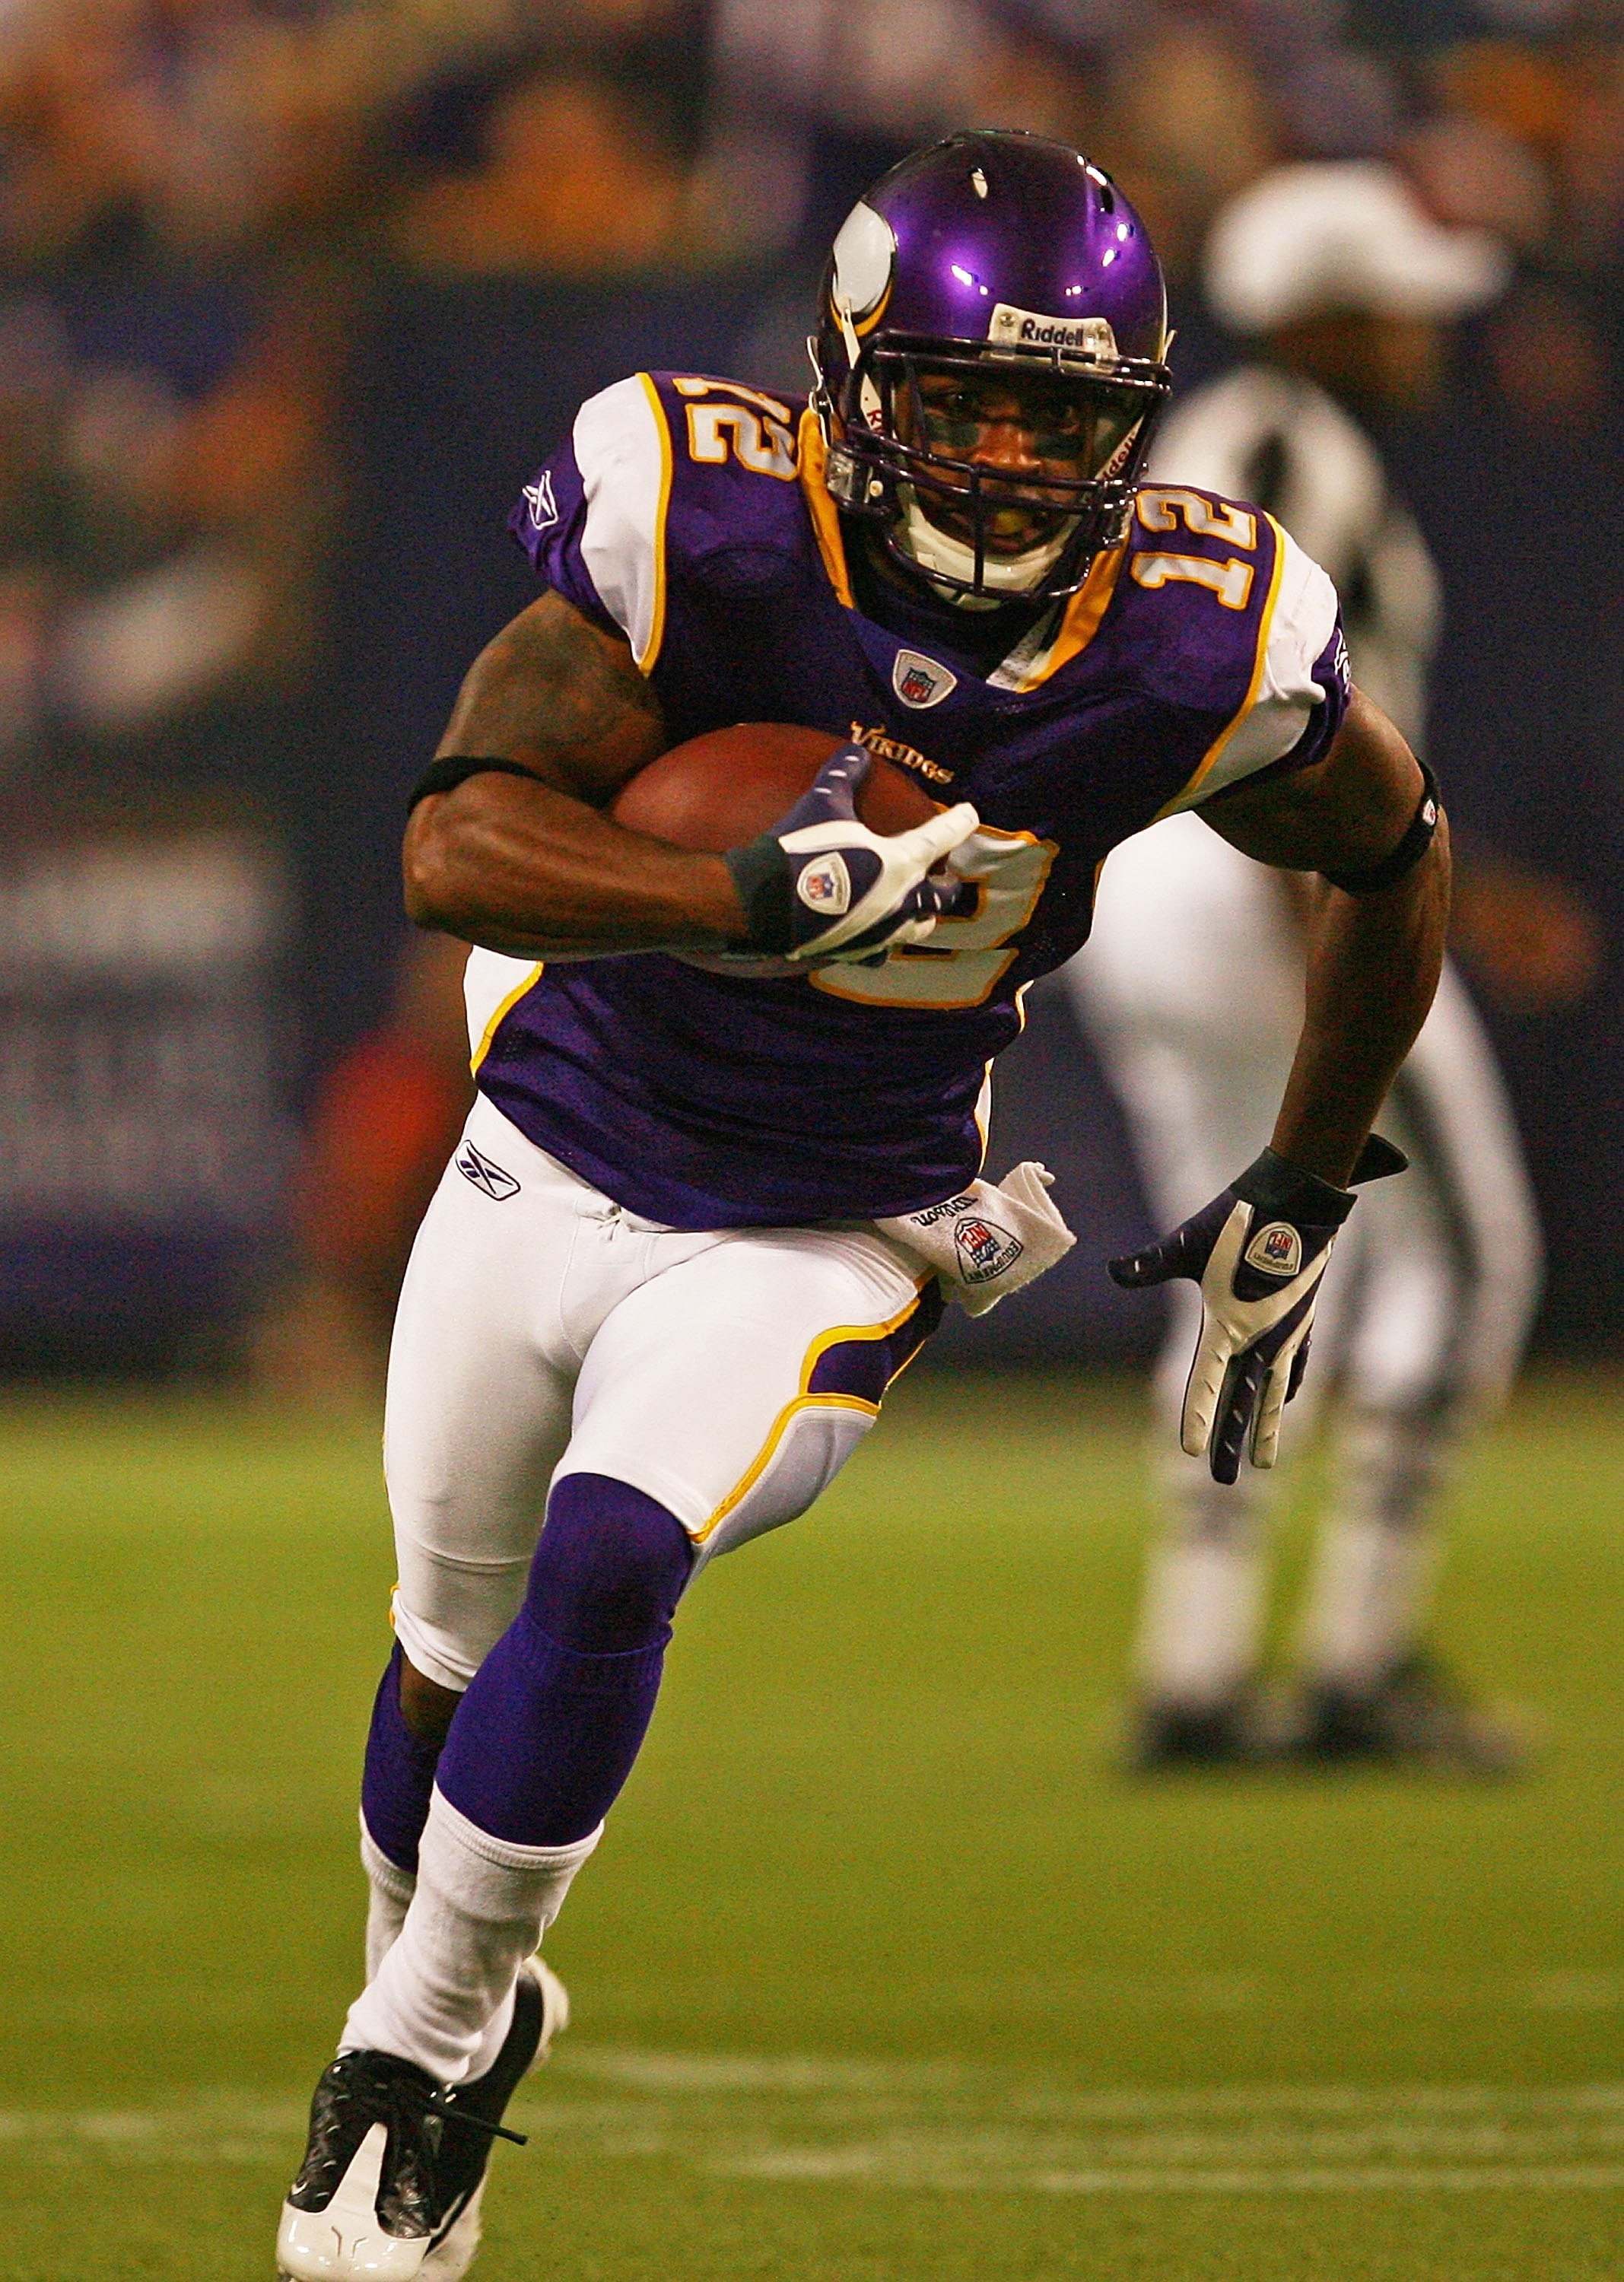 MINNEAPOLIS - SEPTEMBER 27: Percey Harvin #12 of the Minnesota Vikings runs with the ball against the San Francisco 49ers at the Hubert H. Humphrey Metrodome on September 27, 2009 in Minneapolis, Minnesota. The Vikings defeated the 49ers 27-24.  (Photo by